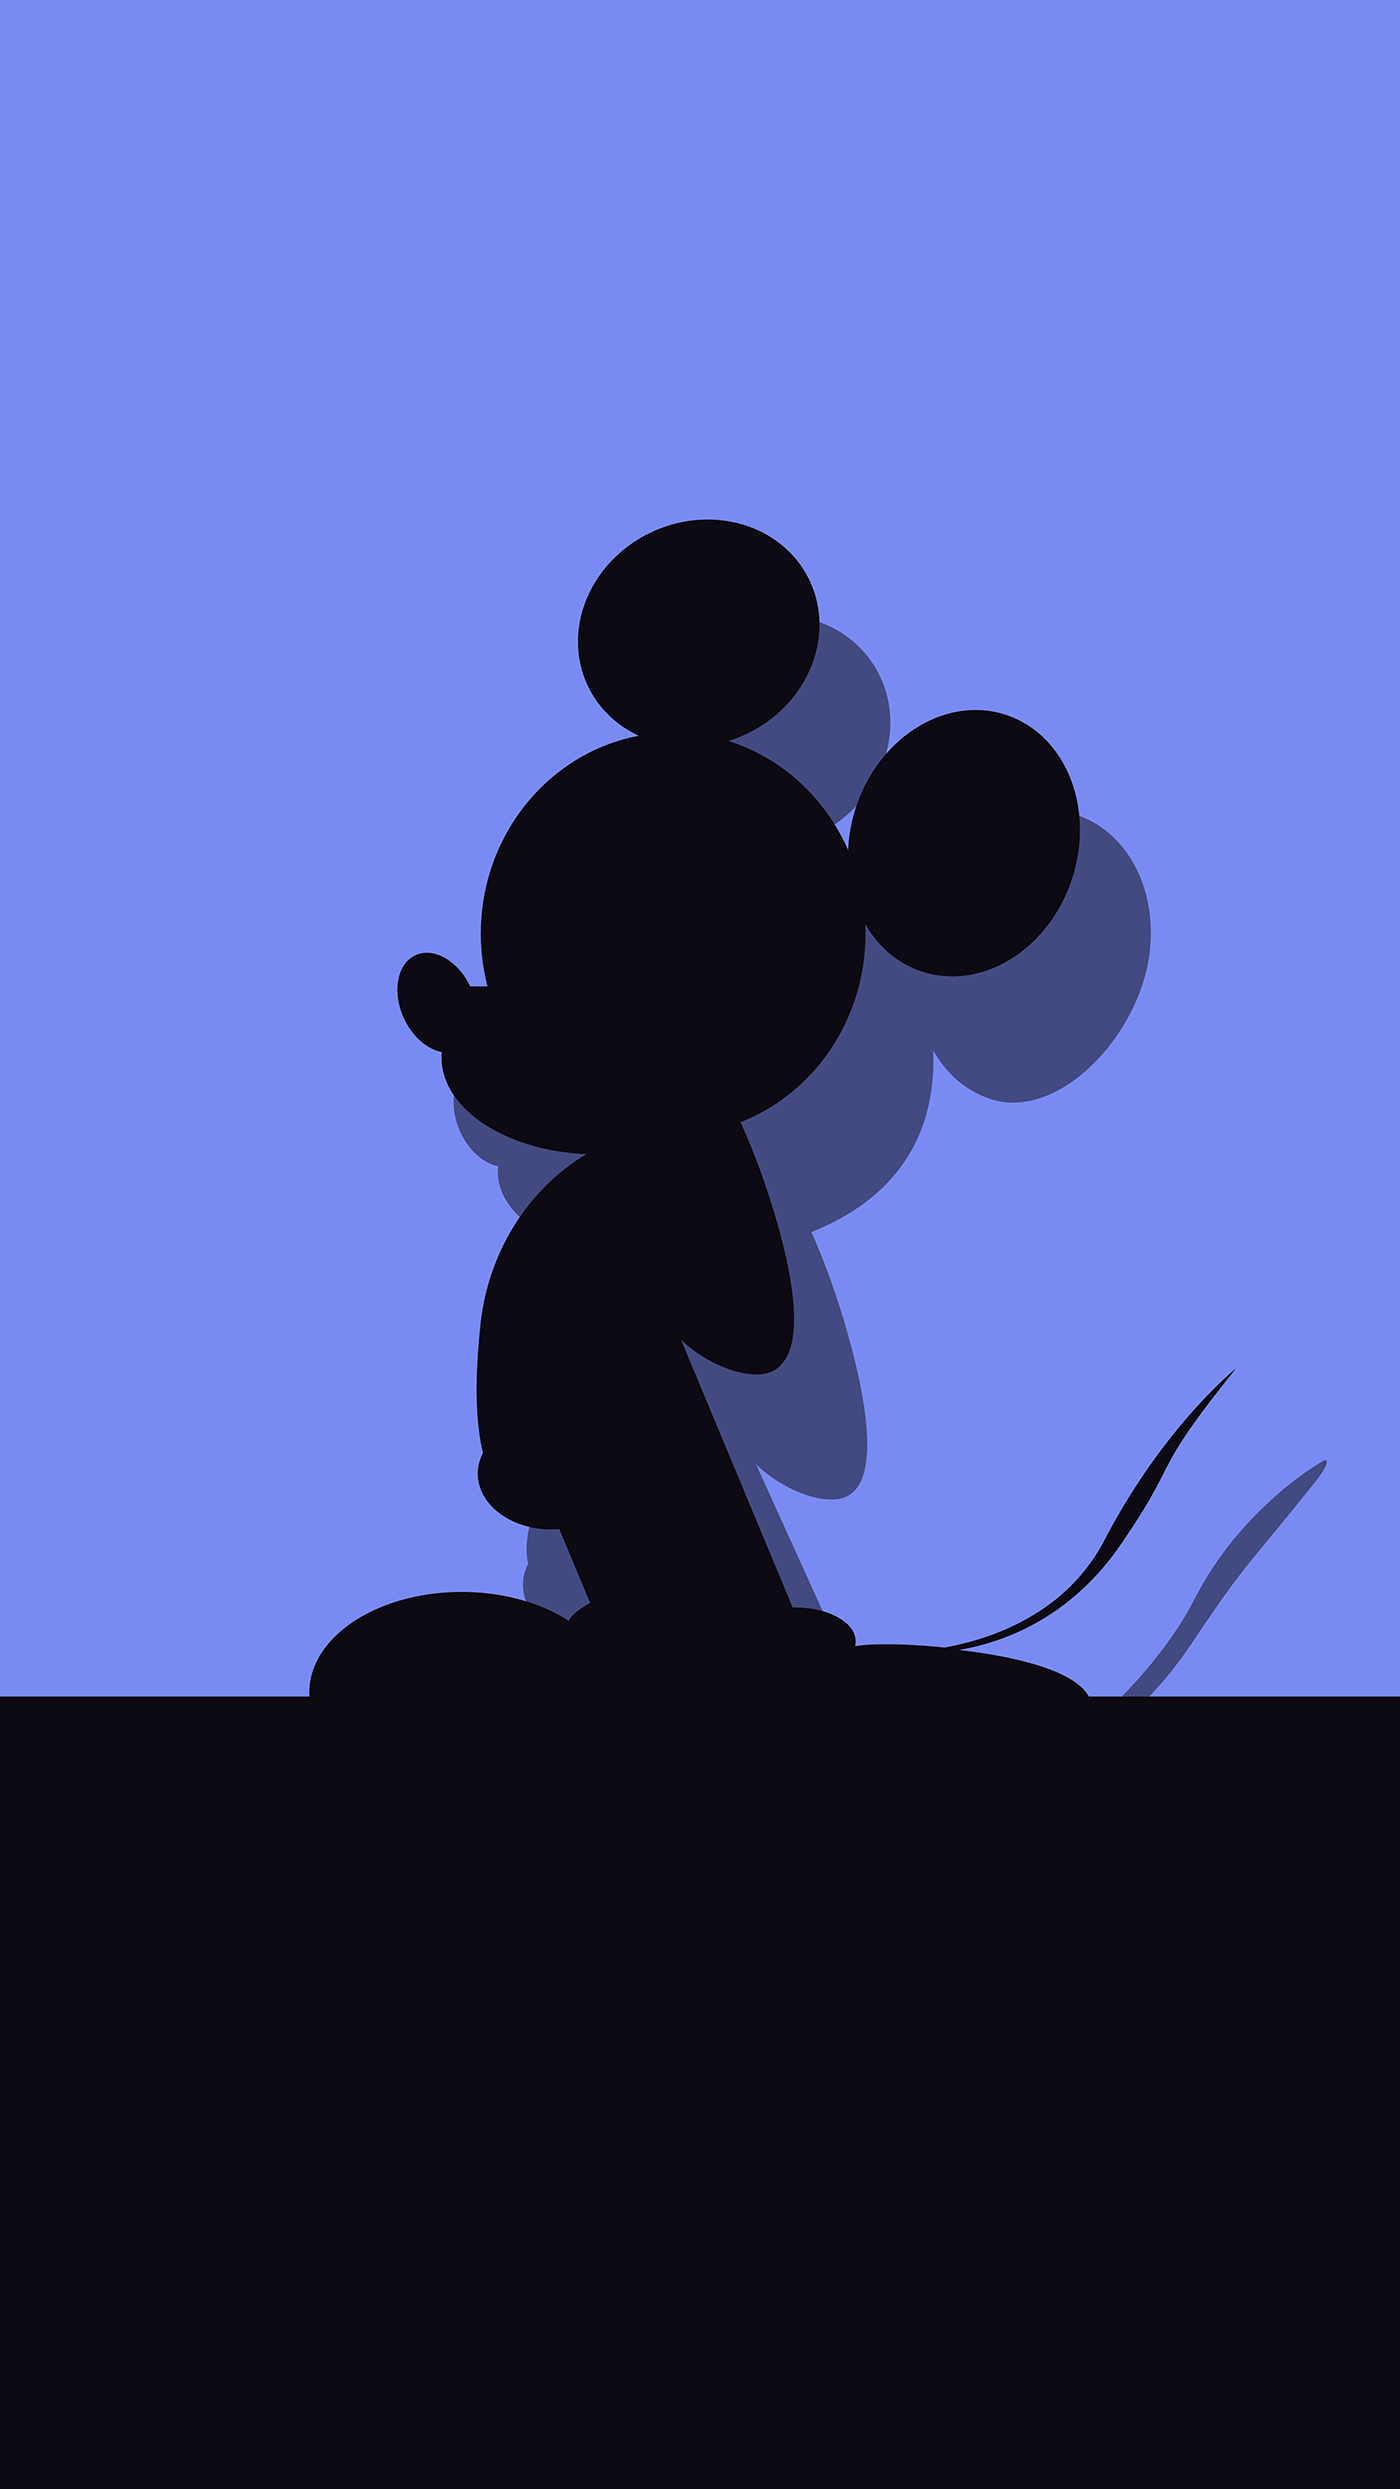 I couldn't find any good Mickey Mouse wallpapers online, so I decided to make my own. Download links below!